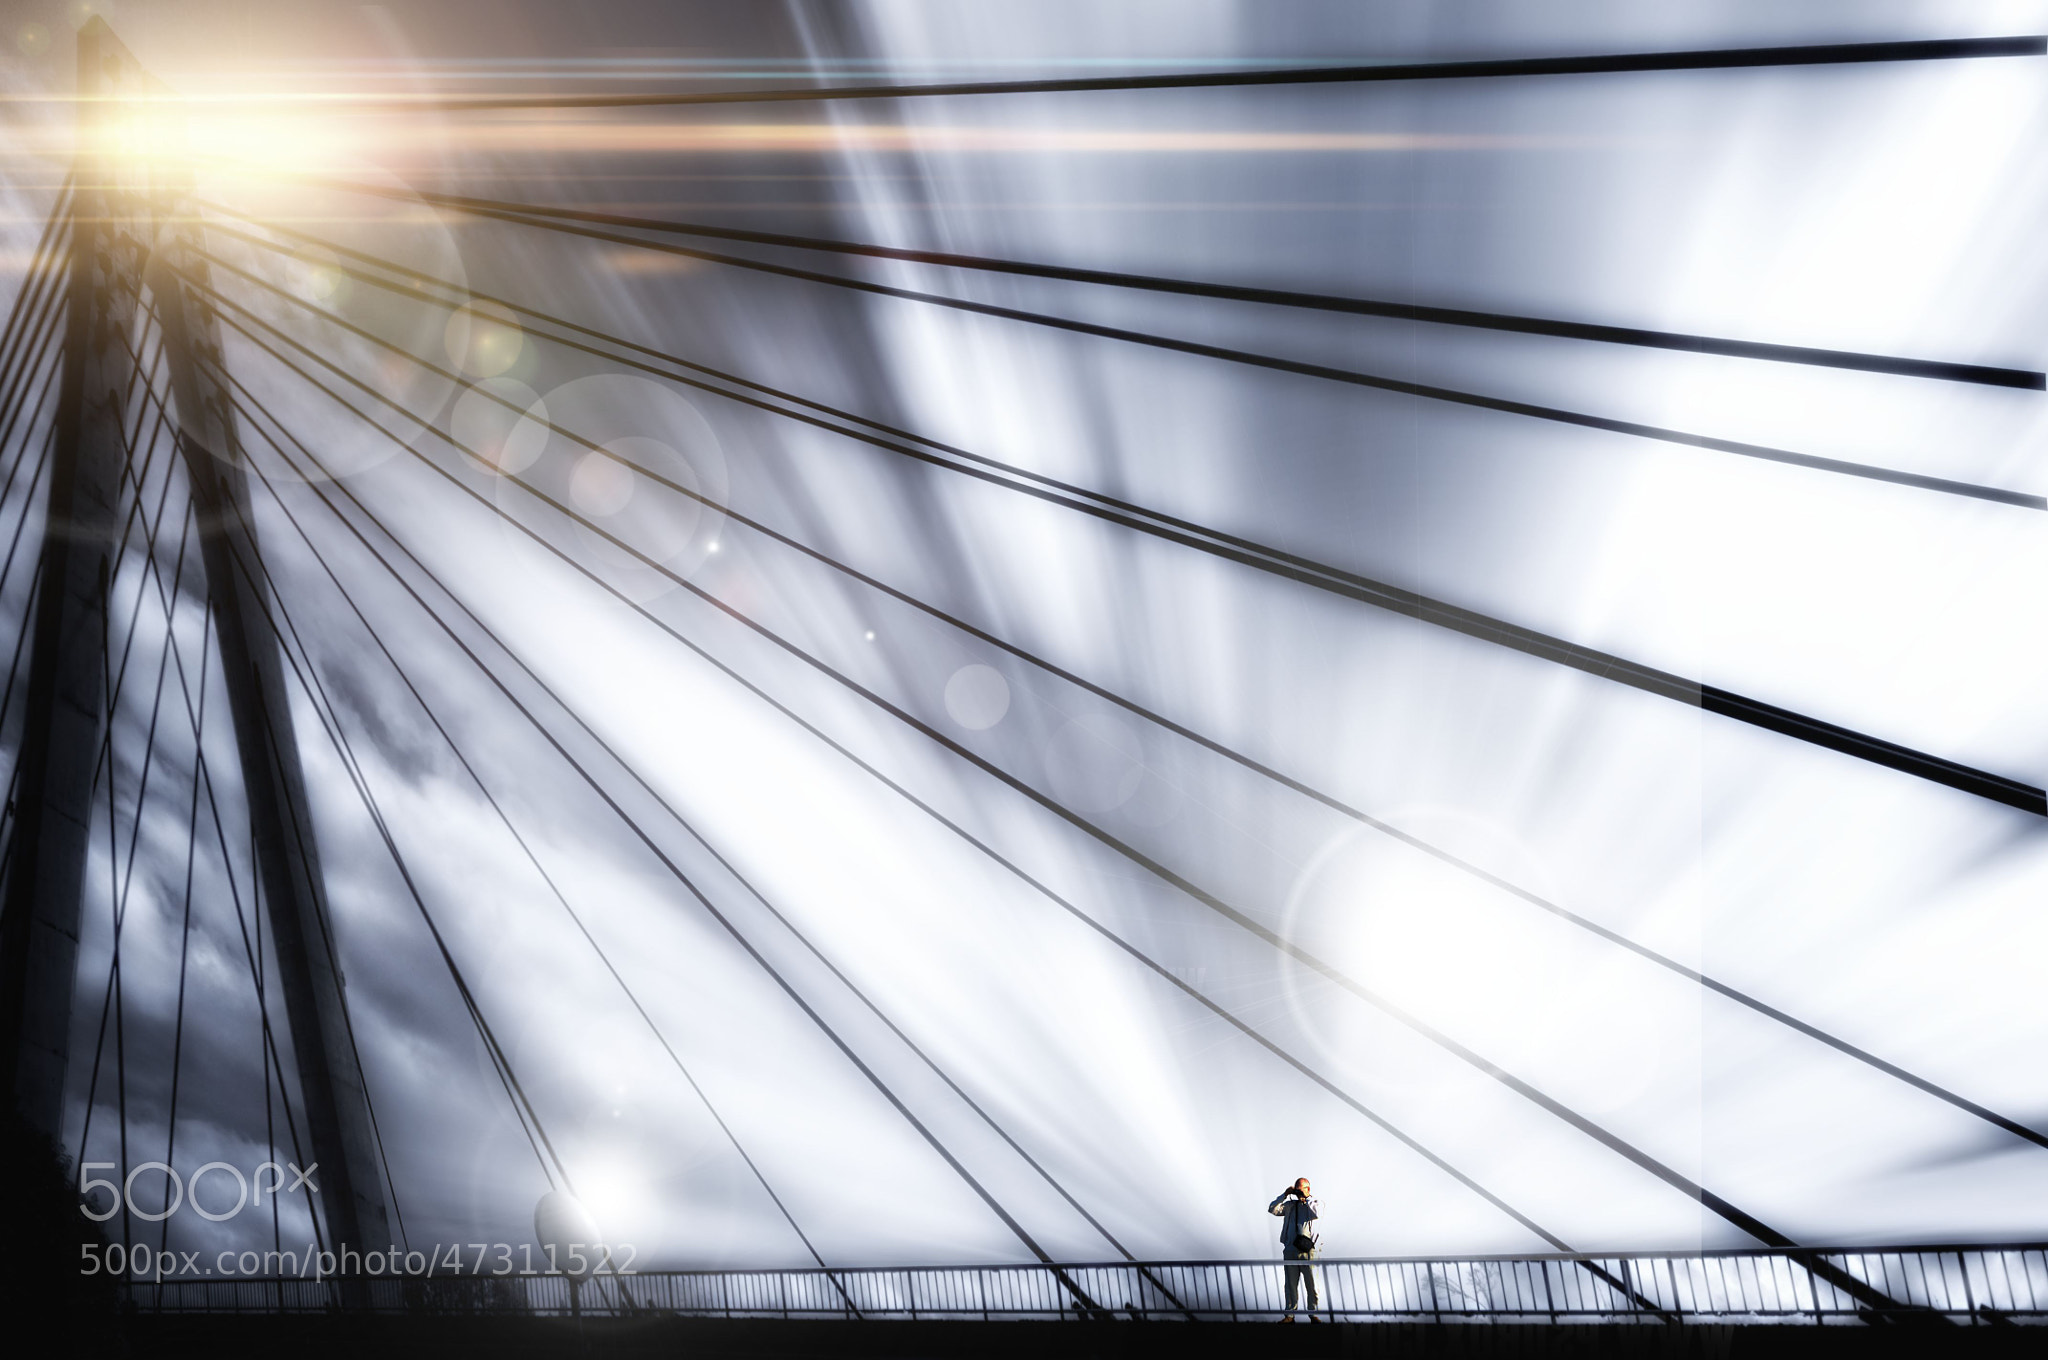 Photograph al otro lado del puente by Mayte Weber on 500px